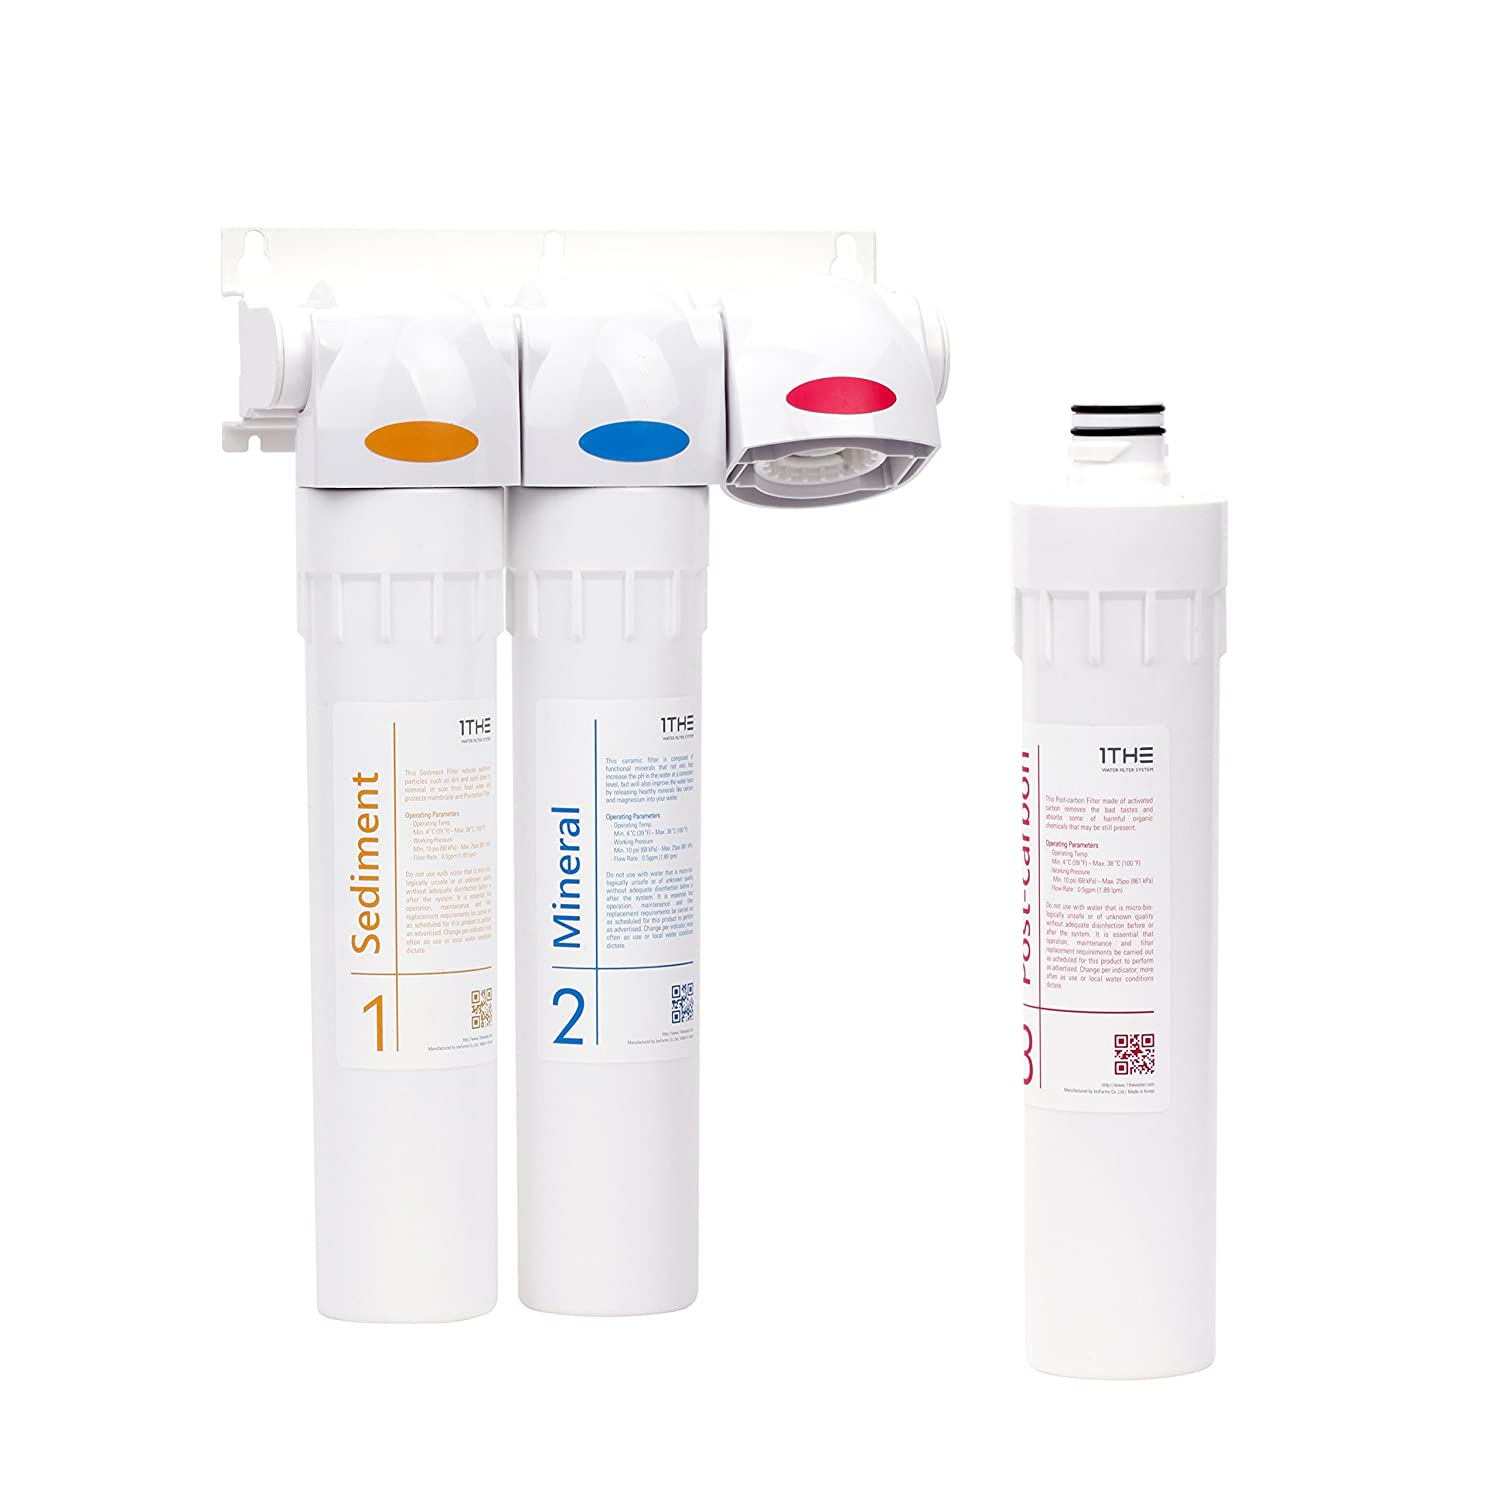 1THE Water Filter System Mineral Pro Set IONFARMS